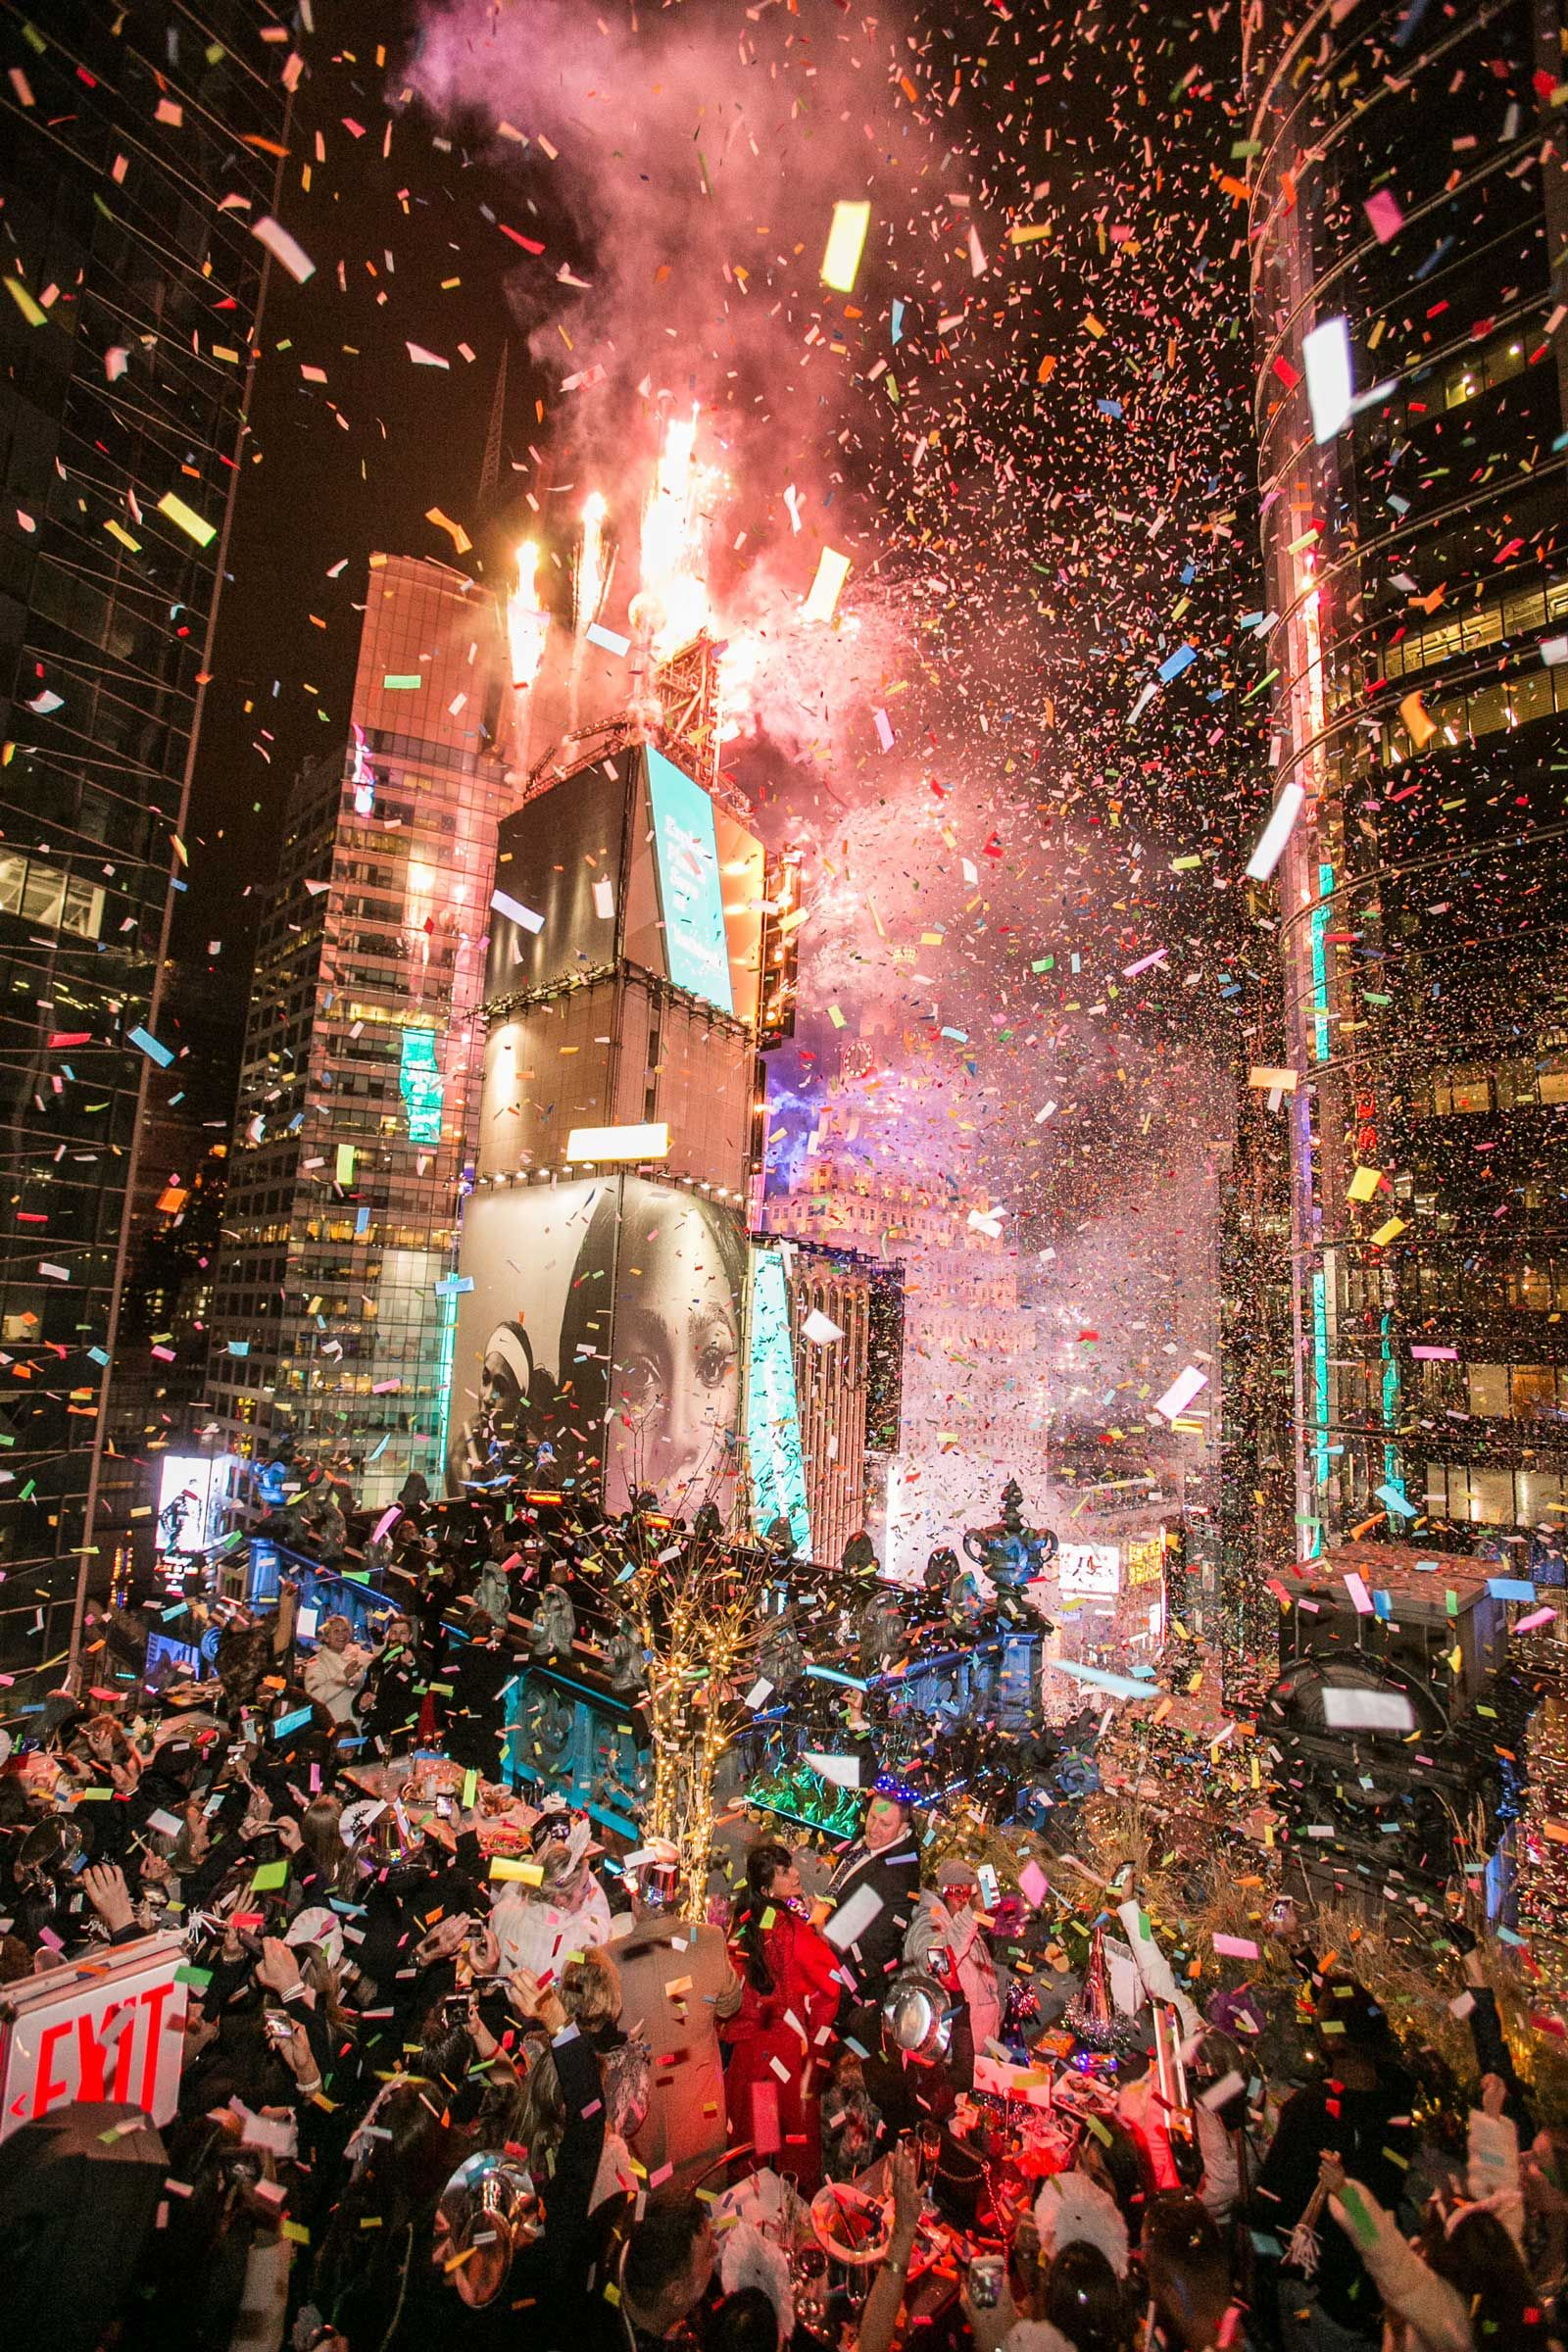 Knickerbocker Hotel Most Expensive New Year's Eve Party